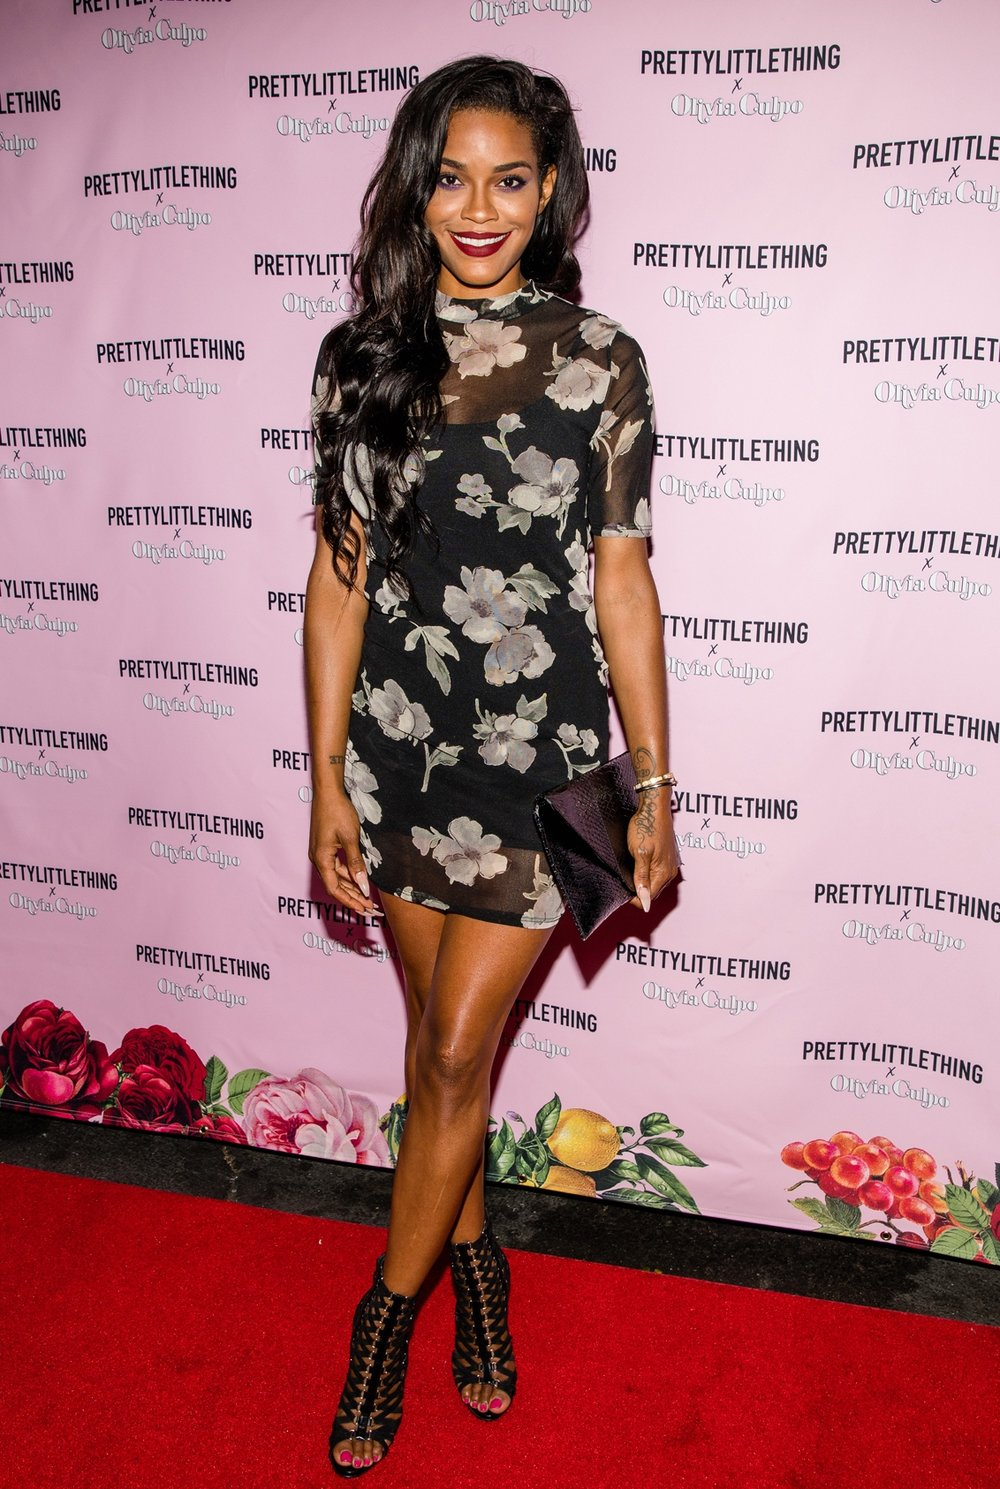 PrettyLittleThing PLT X Olivia Culpo Collection  Celebrity Launch Party 2nd Wives Club Veronika Obeng.jpg